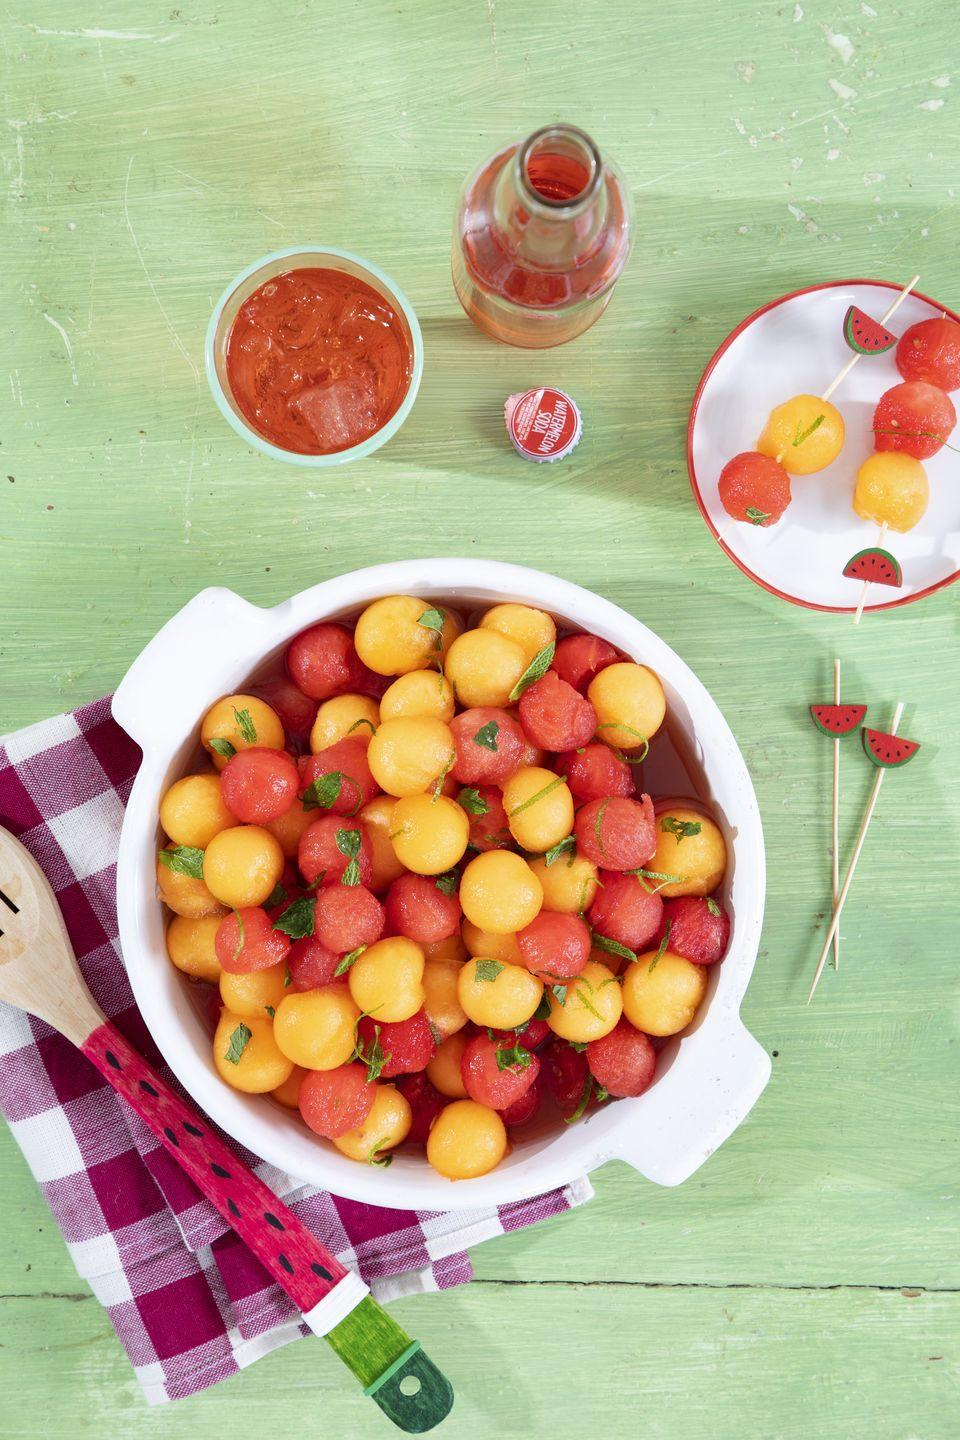 """<p>Serve this sweet fruit salad, and you'll be taking home an empty bowl.</p><p><strong><a href=""""https://www.countryliving.com/food-drinks/a36301828/marinated-melon-with-mint-and-lime-zest-recipe/"""" rel=""""nofollow noopener"""" target=""""_blank"""" data-ylk=""""slk:Get the recipe"""" class=""""link rapid-noclick-resp"""">Get the recipe</a>.</strong></p>"""